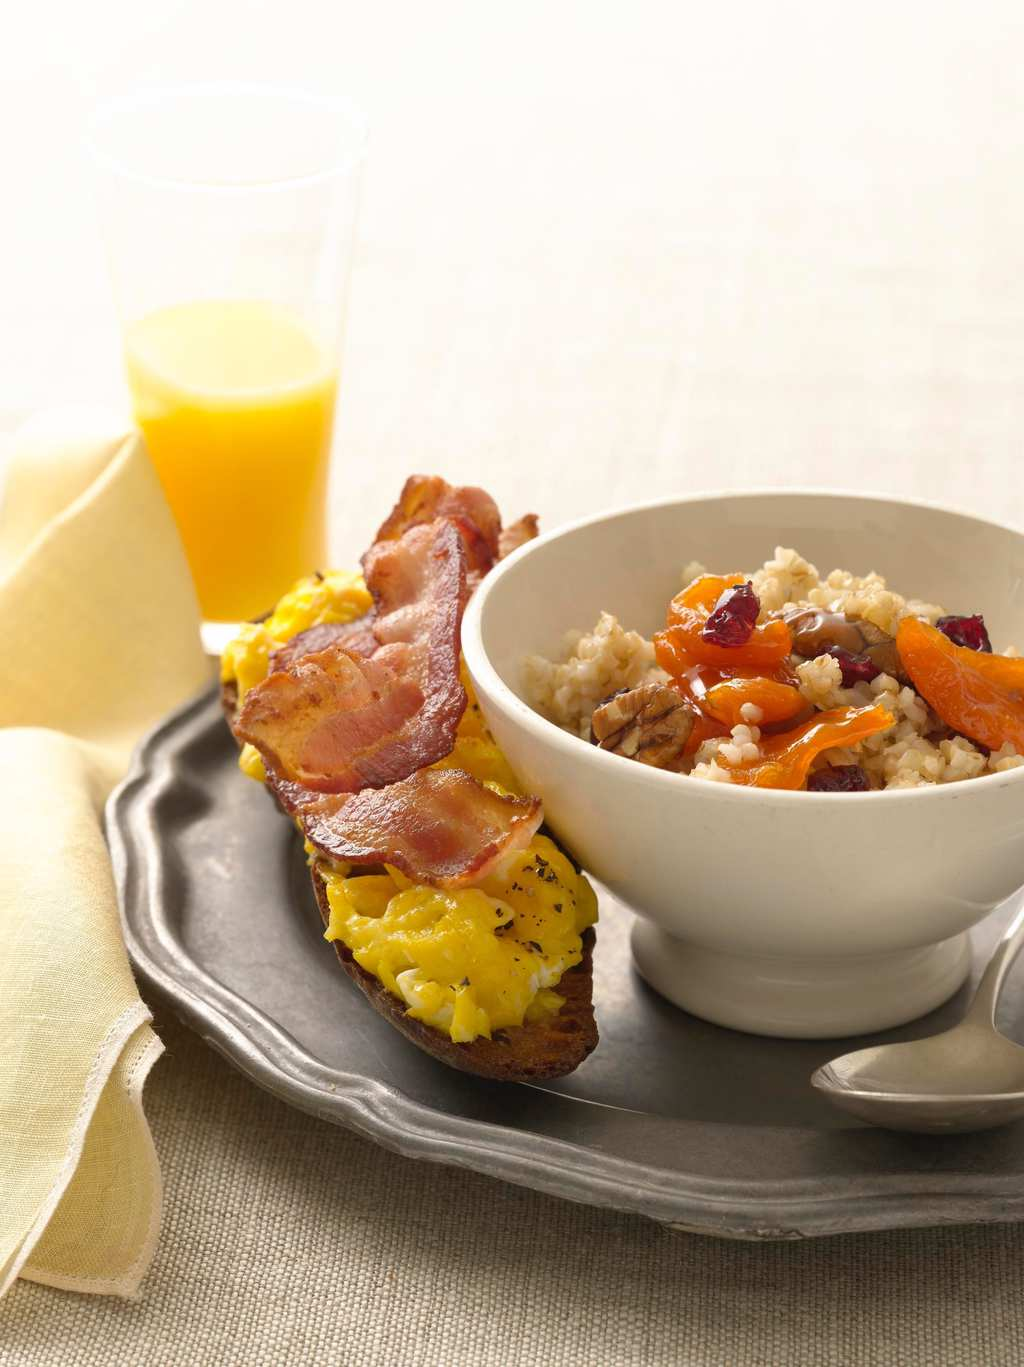 Cereal and fruit in white bowl with bacon and egg toast on pewter plate w yellow napkin